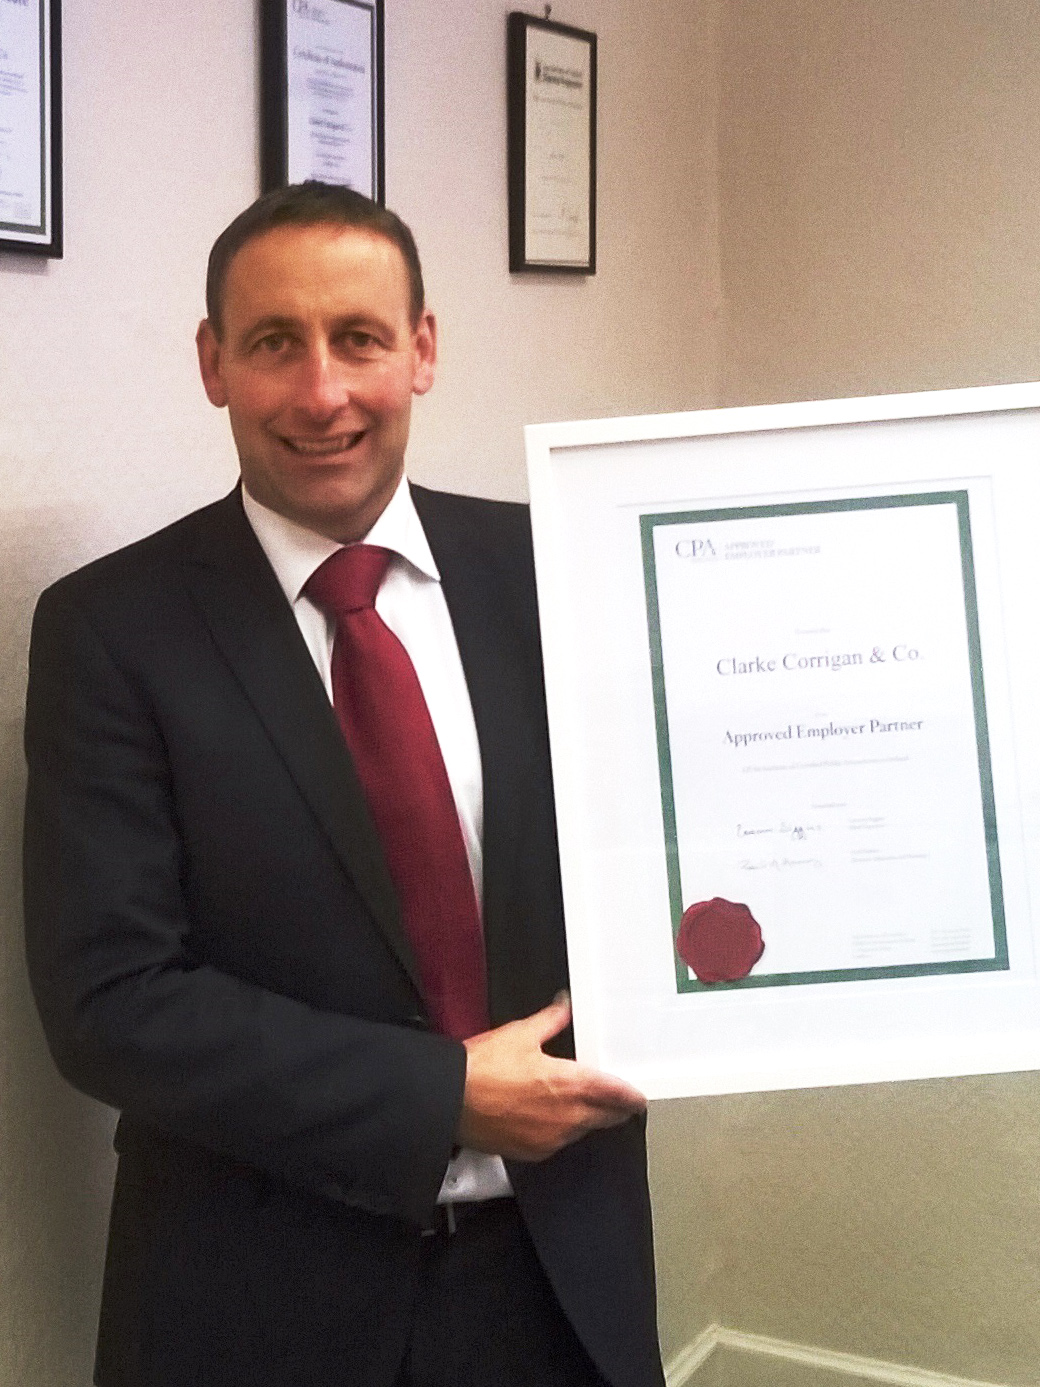 Barry Clark Clarke Corrigan receiving CPA Approved Employer Certificate